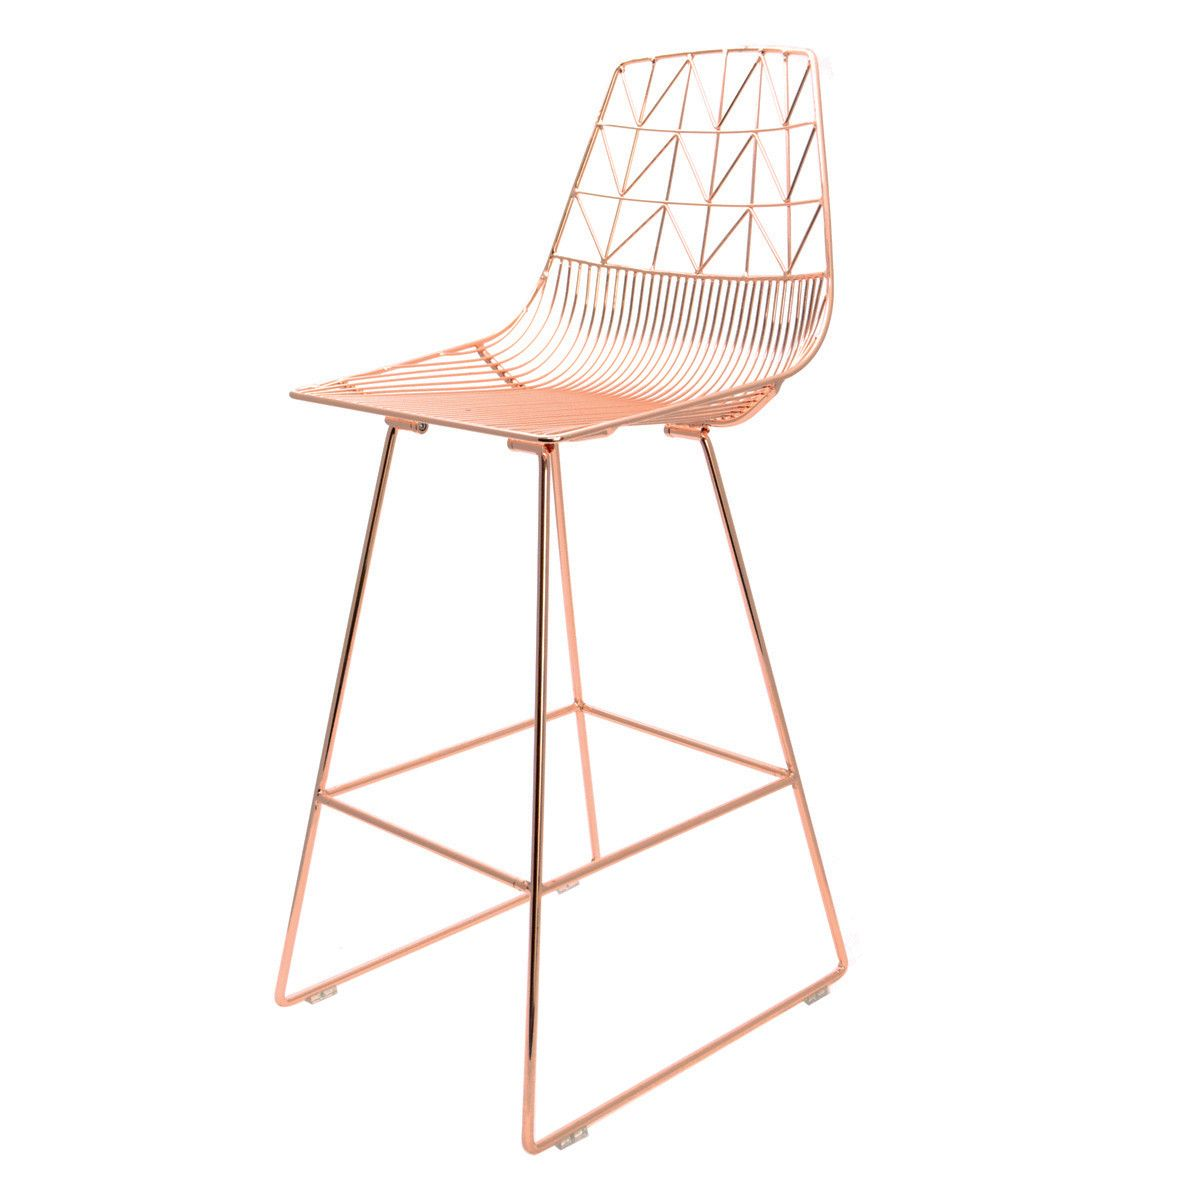 Arrow Wire Barstools Is Part Of The Extensive Range Bar Furniture Offered By B Seated Global